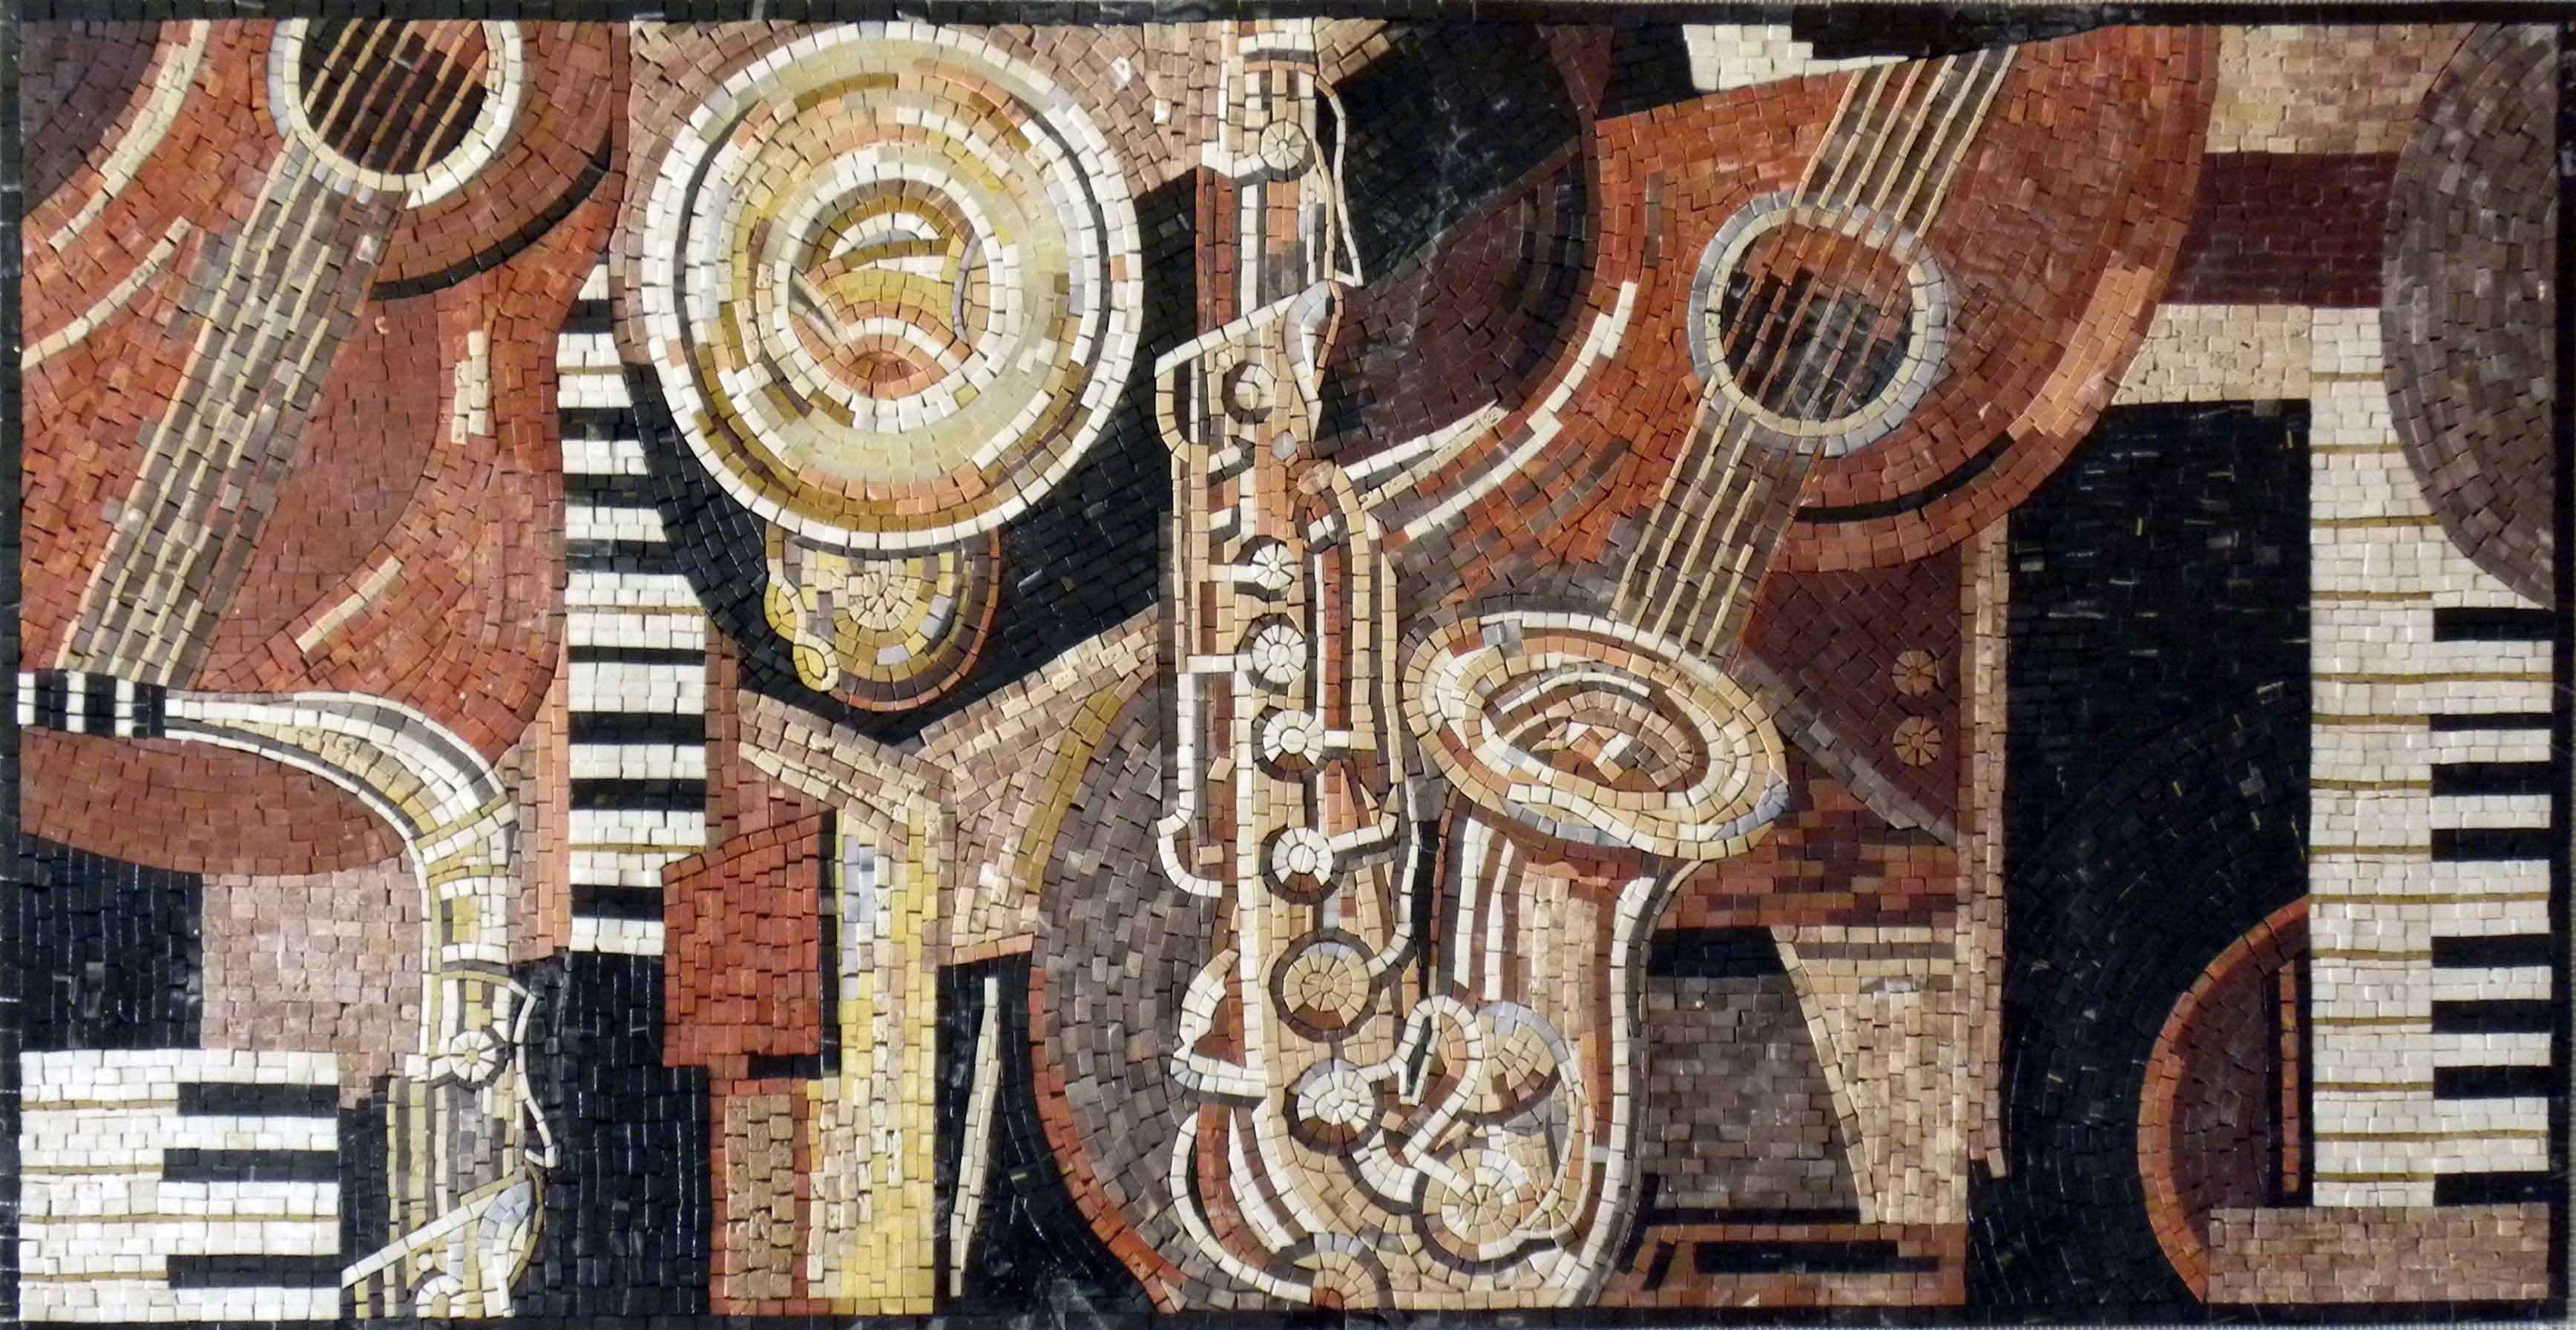 Mosaic Marble Designs - Musical Instruments